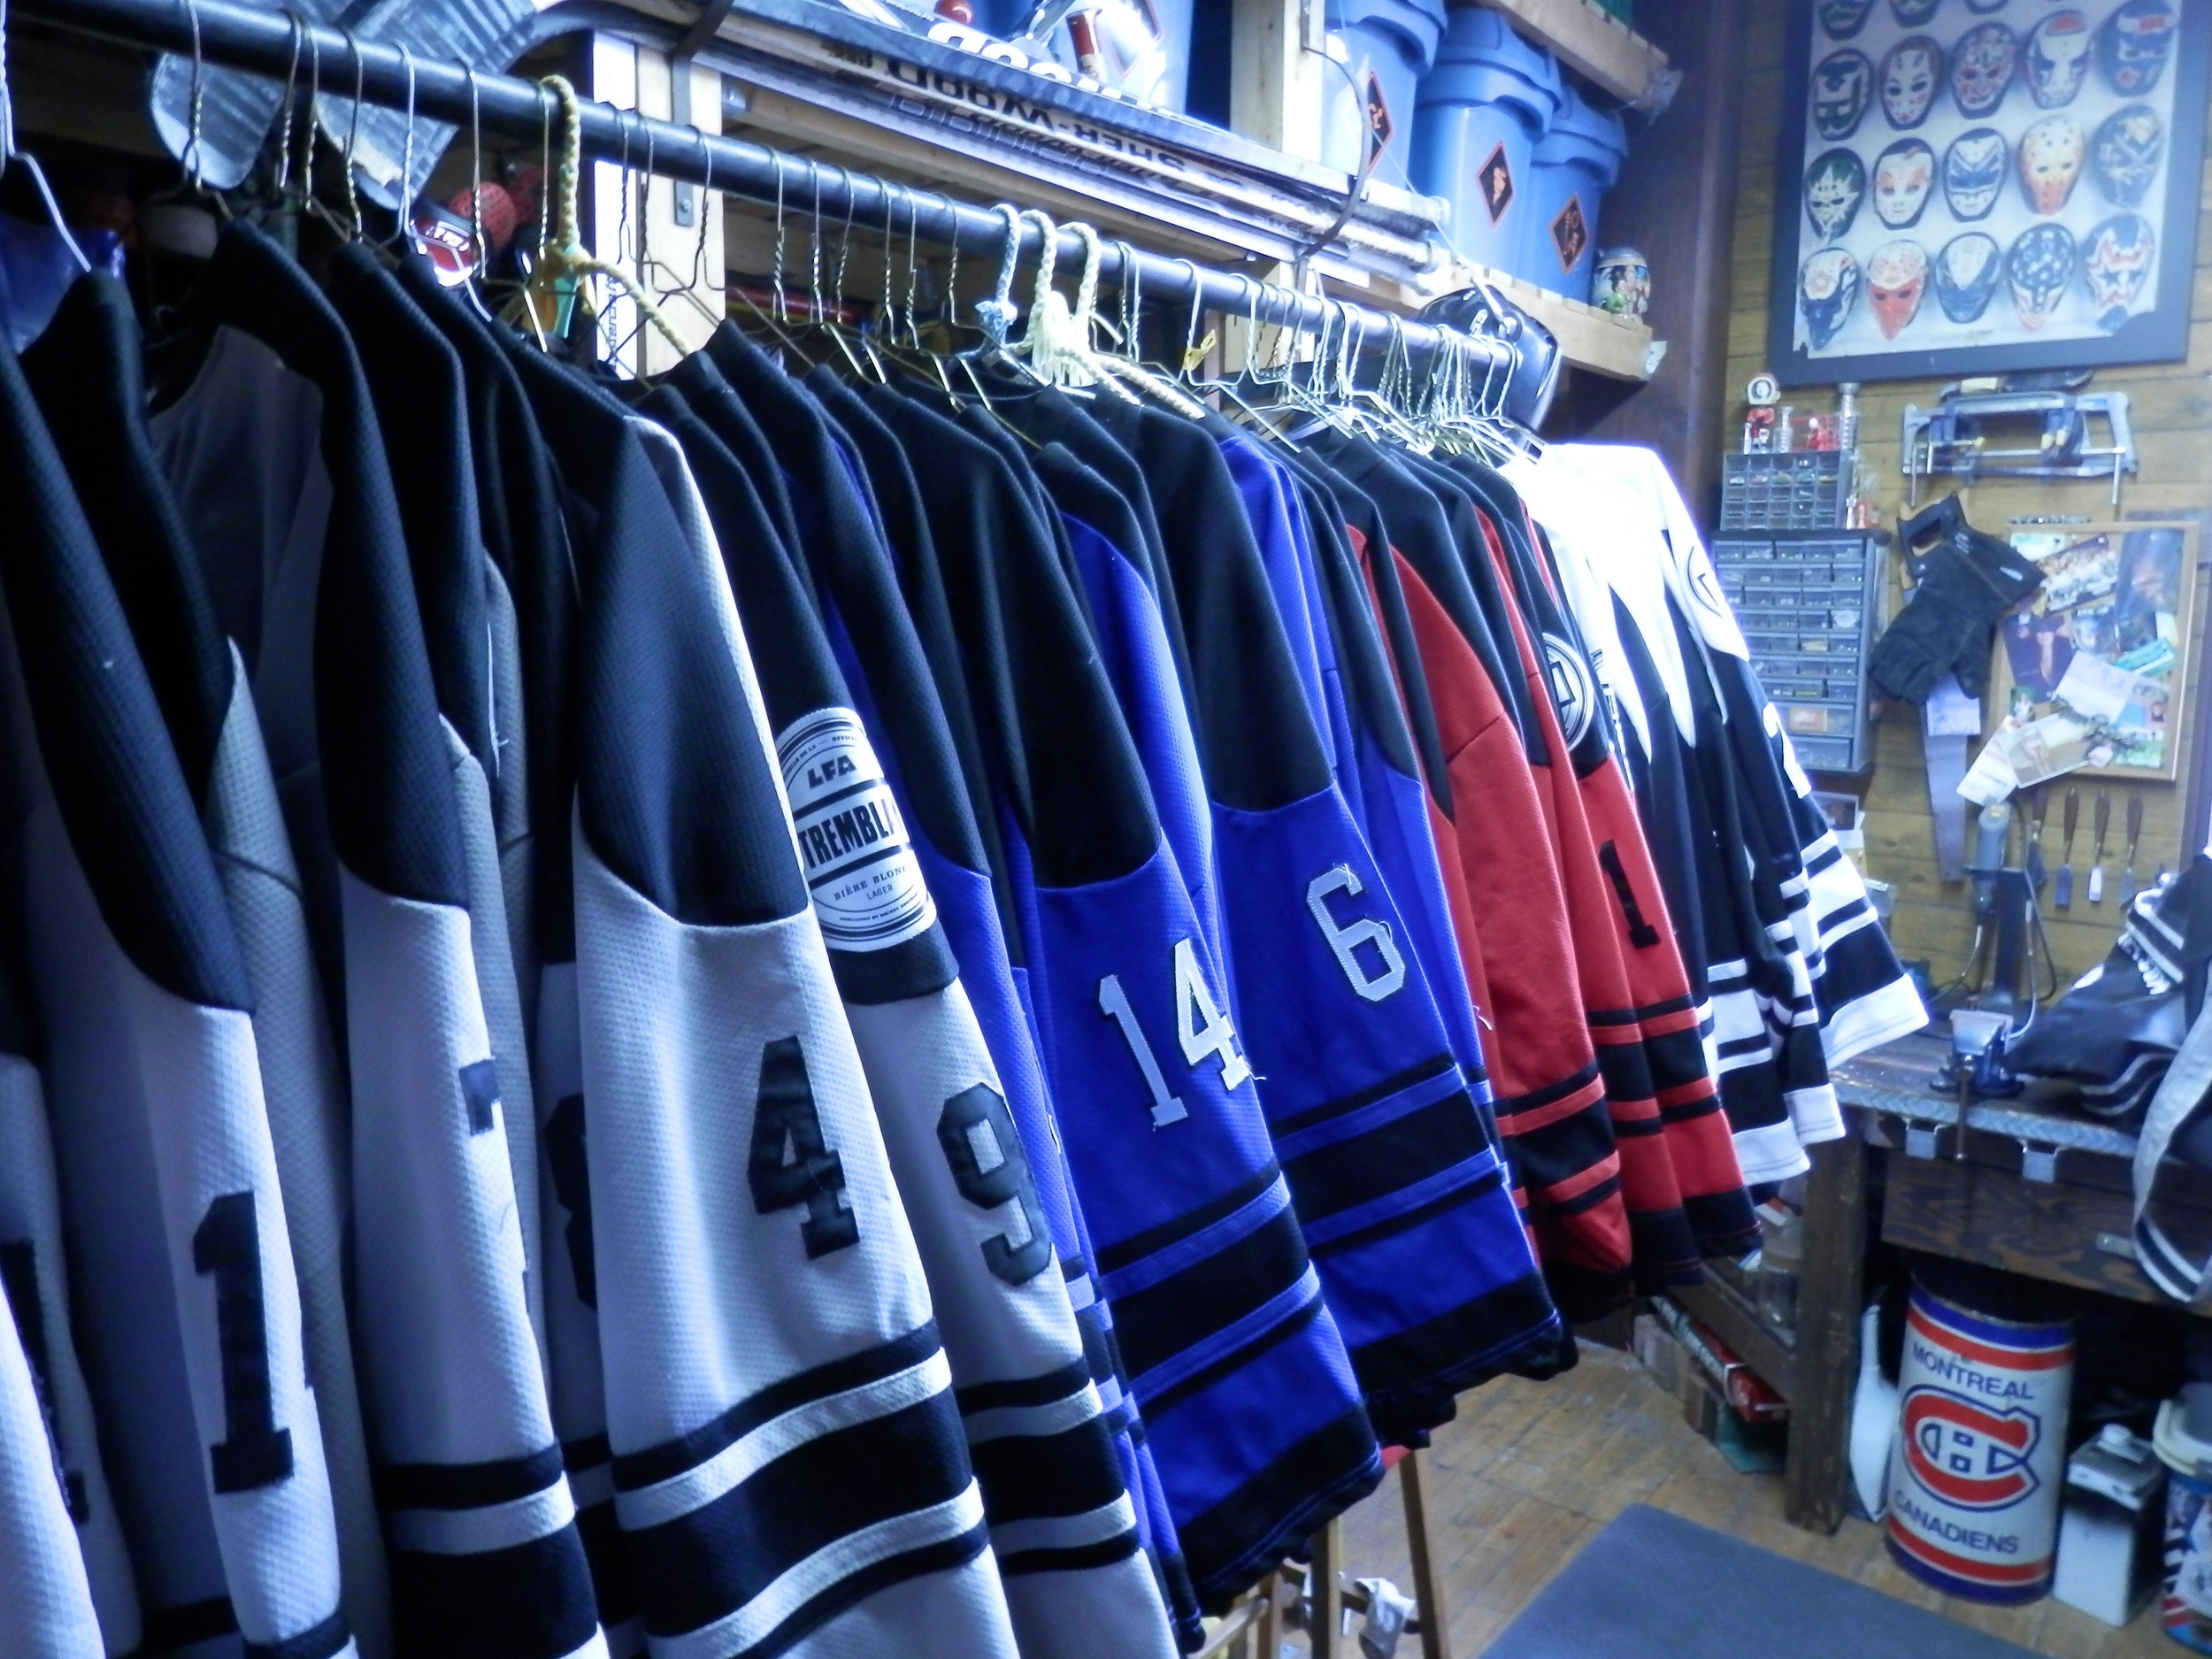 All sixty jersey's minus one, cleaned and ready to go for the 2014-15 season